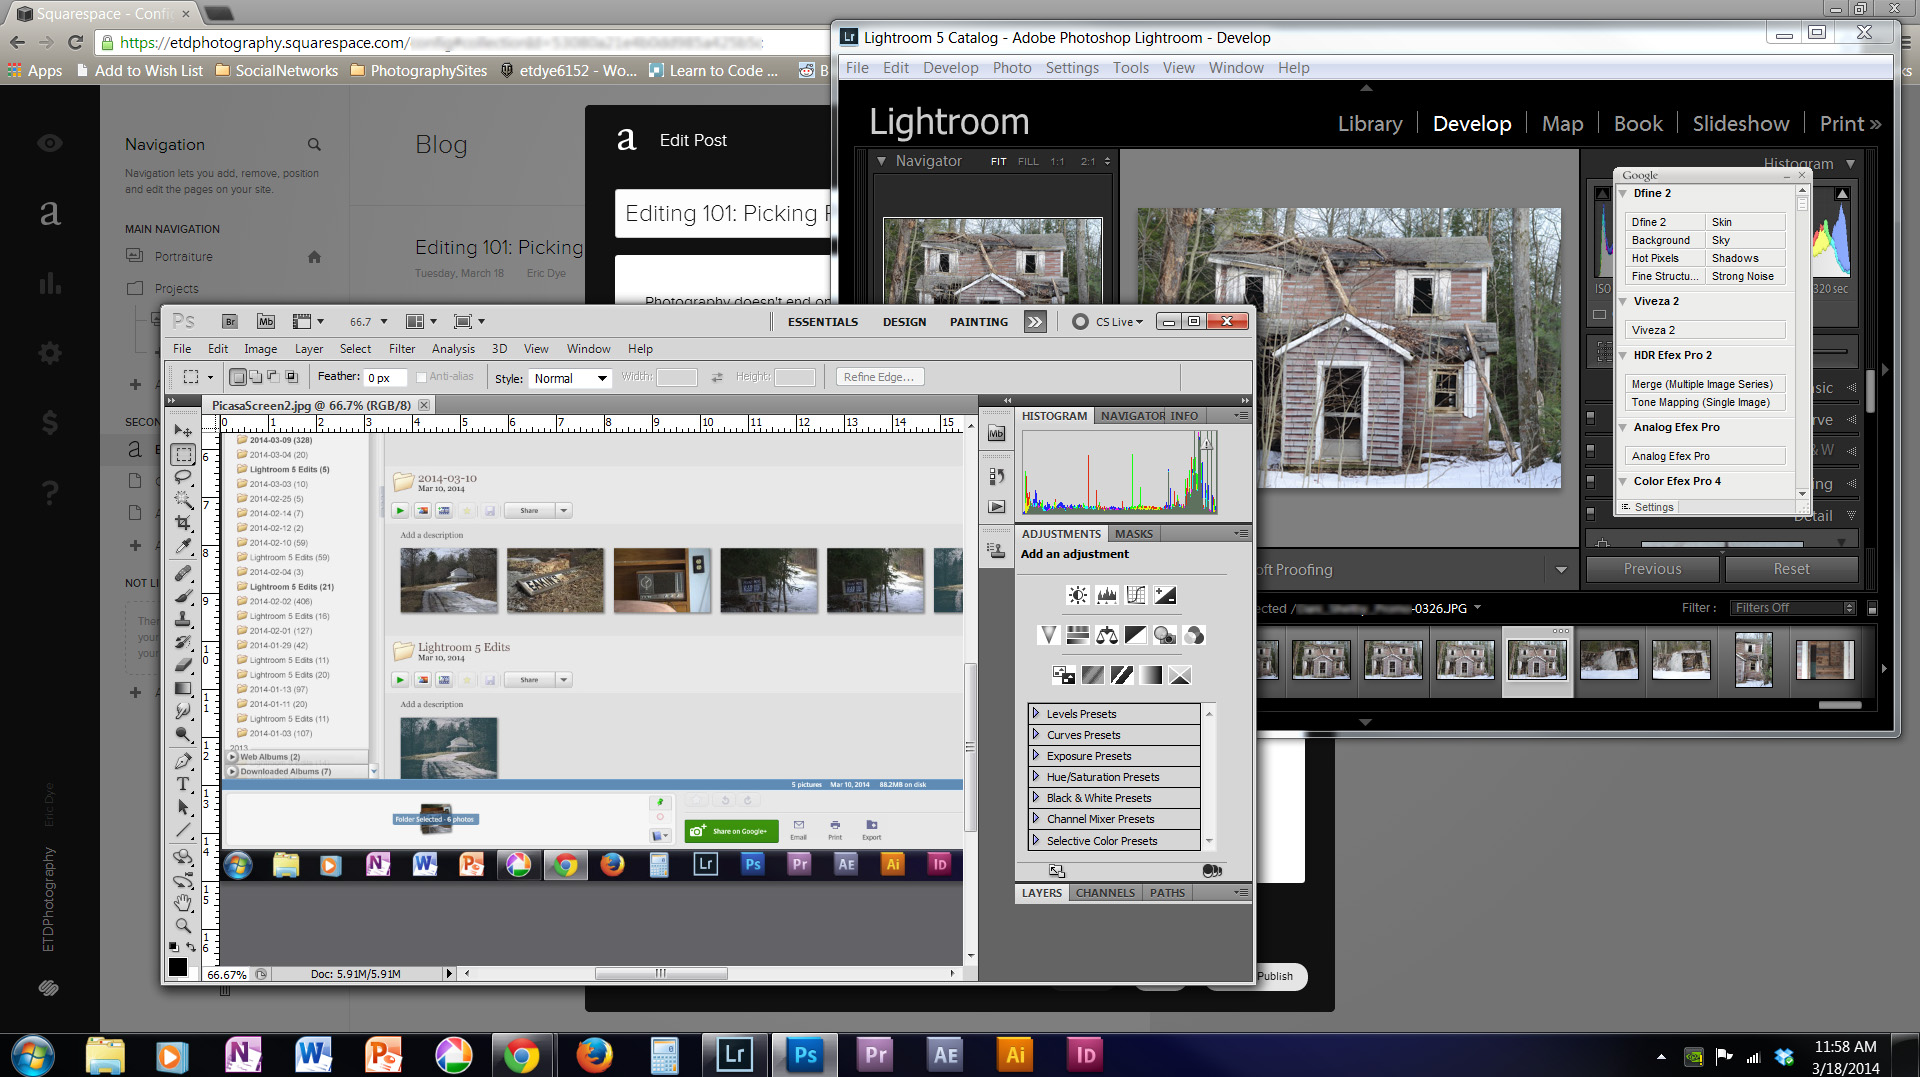 Lightroom and Photoshop are the two programs I use most.